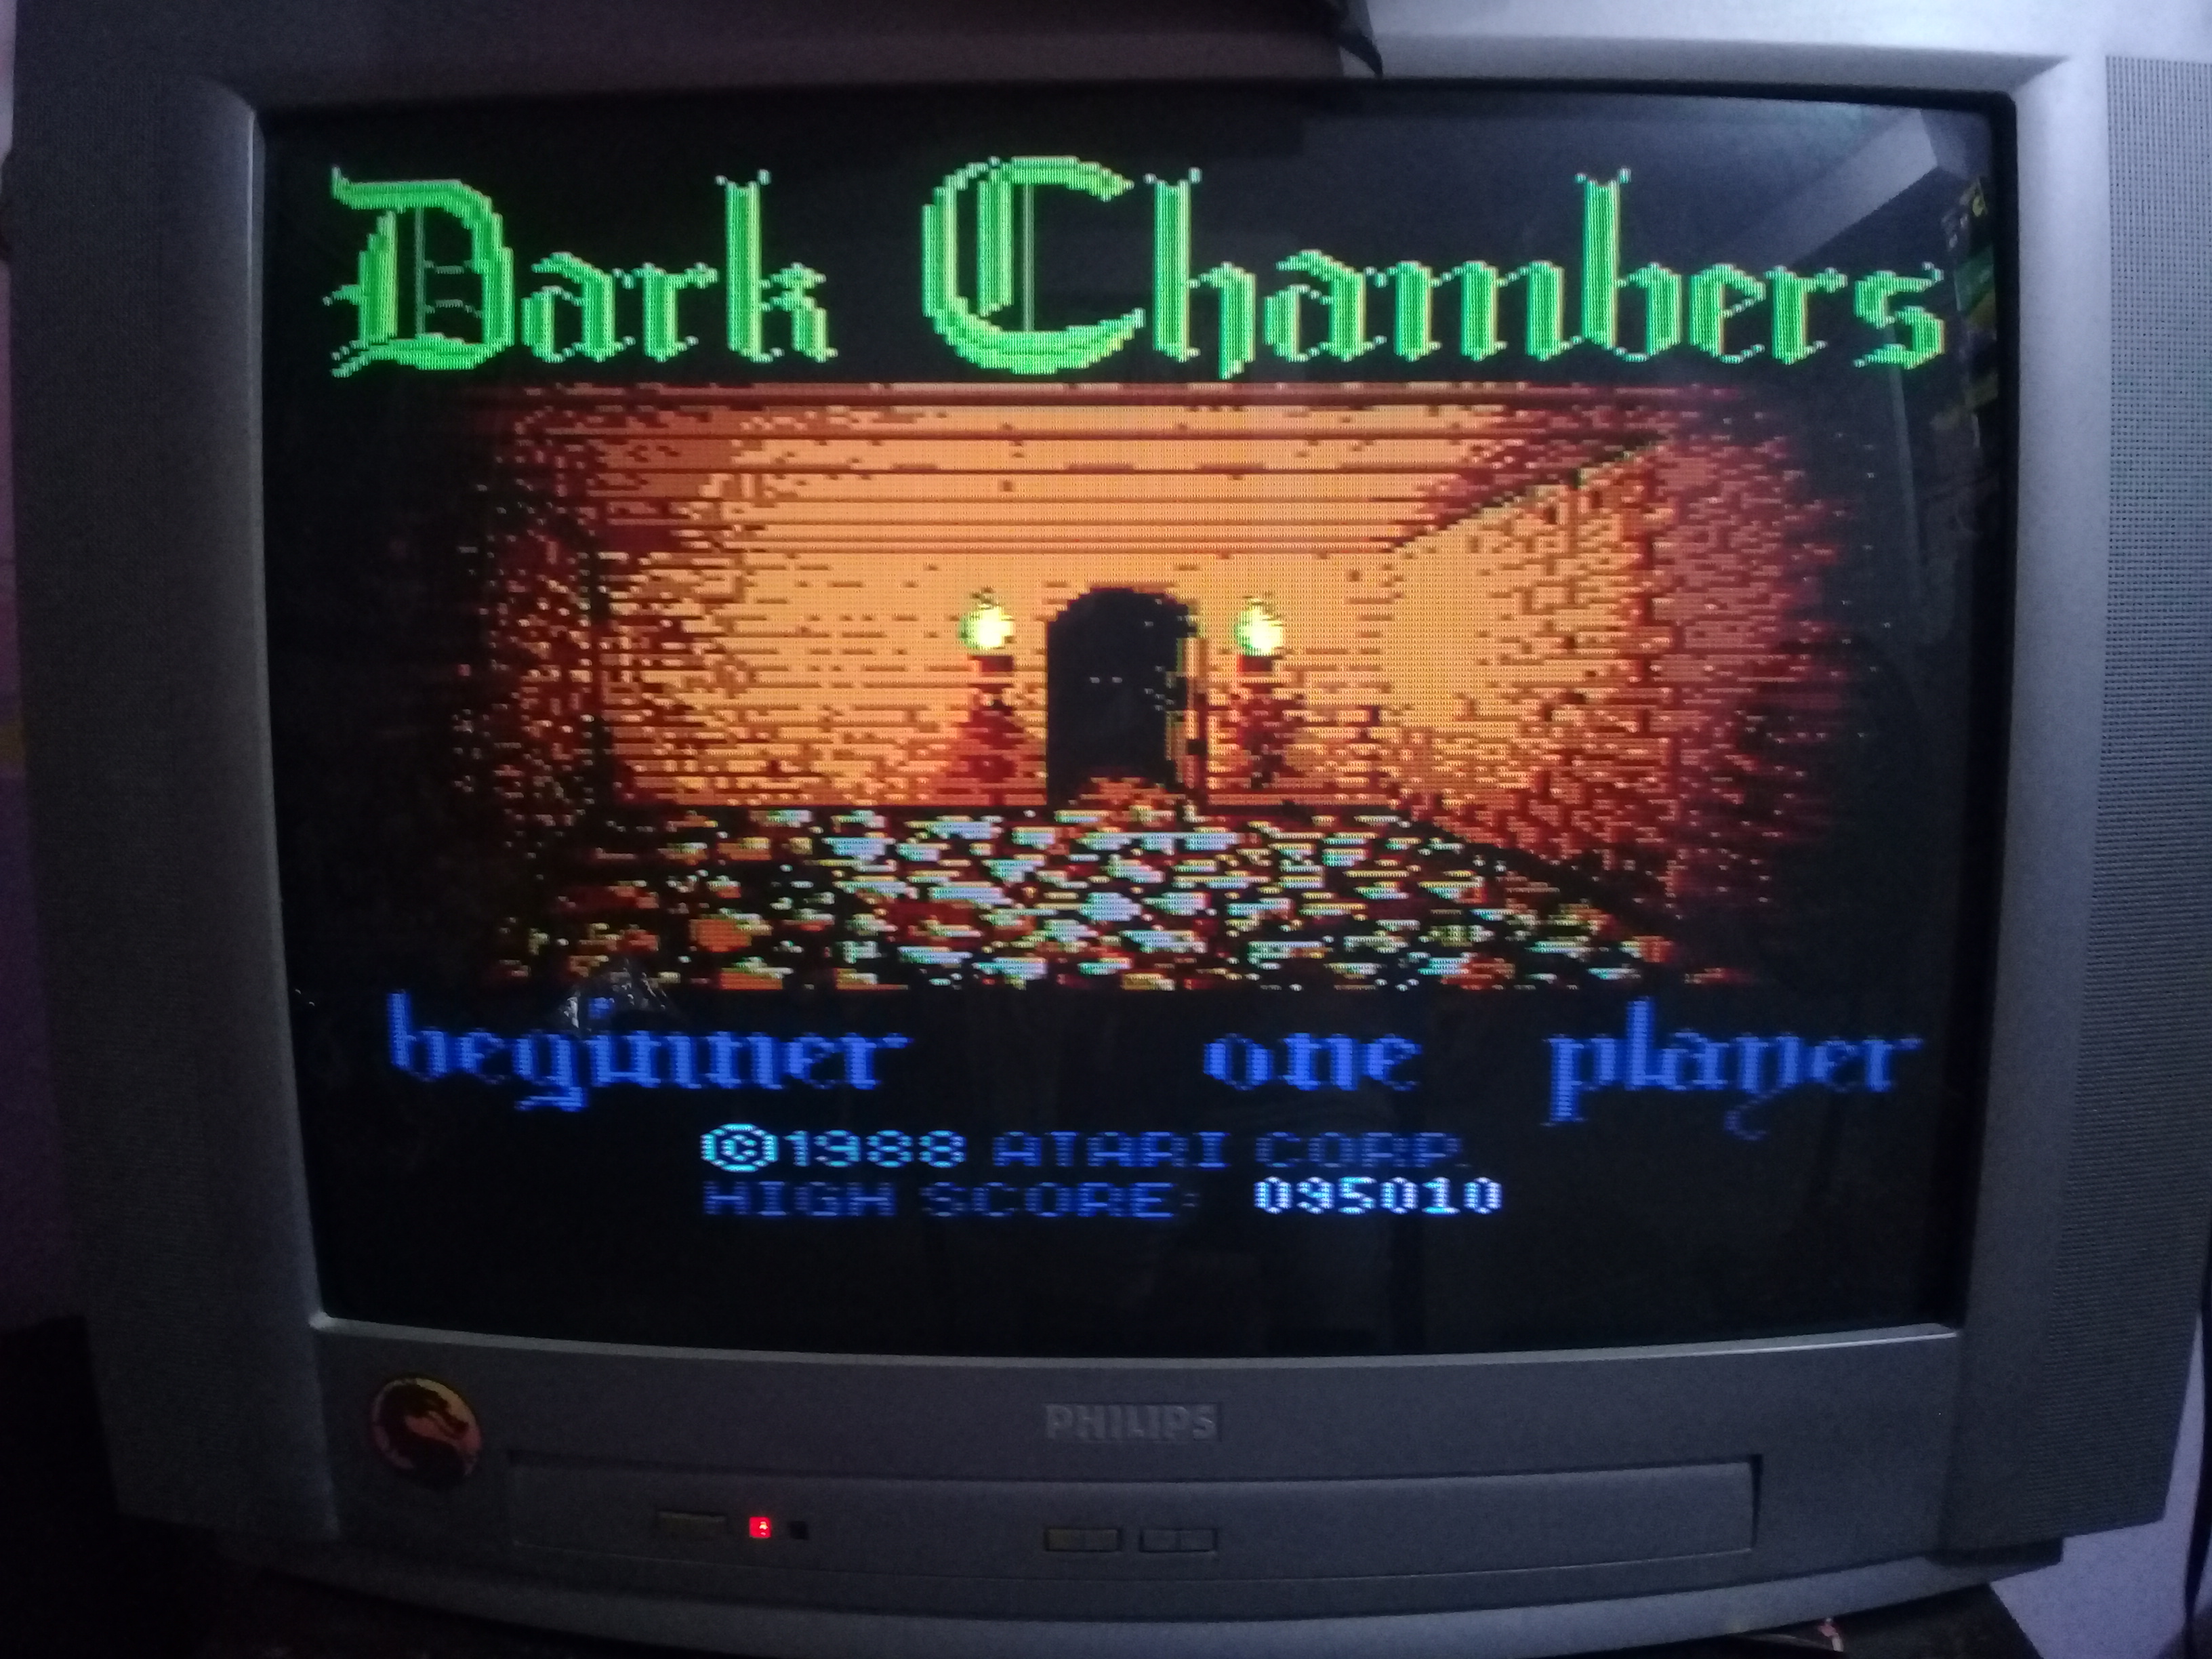 omargeddon: Dark Chambers: Beginner (Atari 400/800/XL/XE) 95,010 points on 2020-04-03 00:57:12